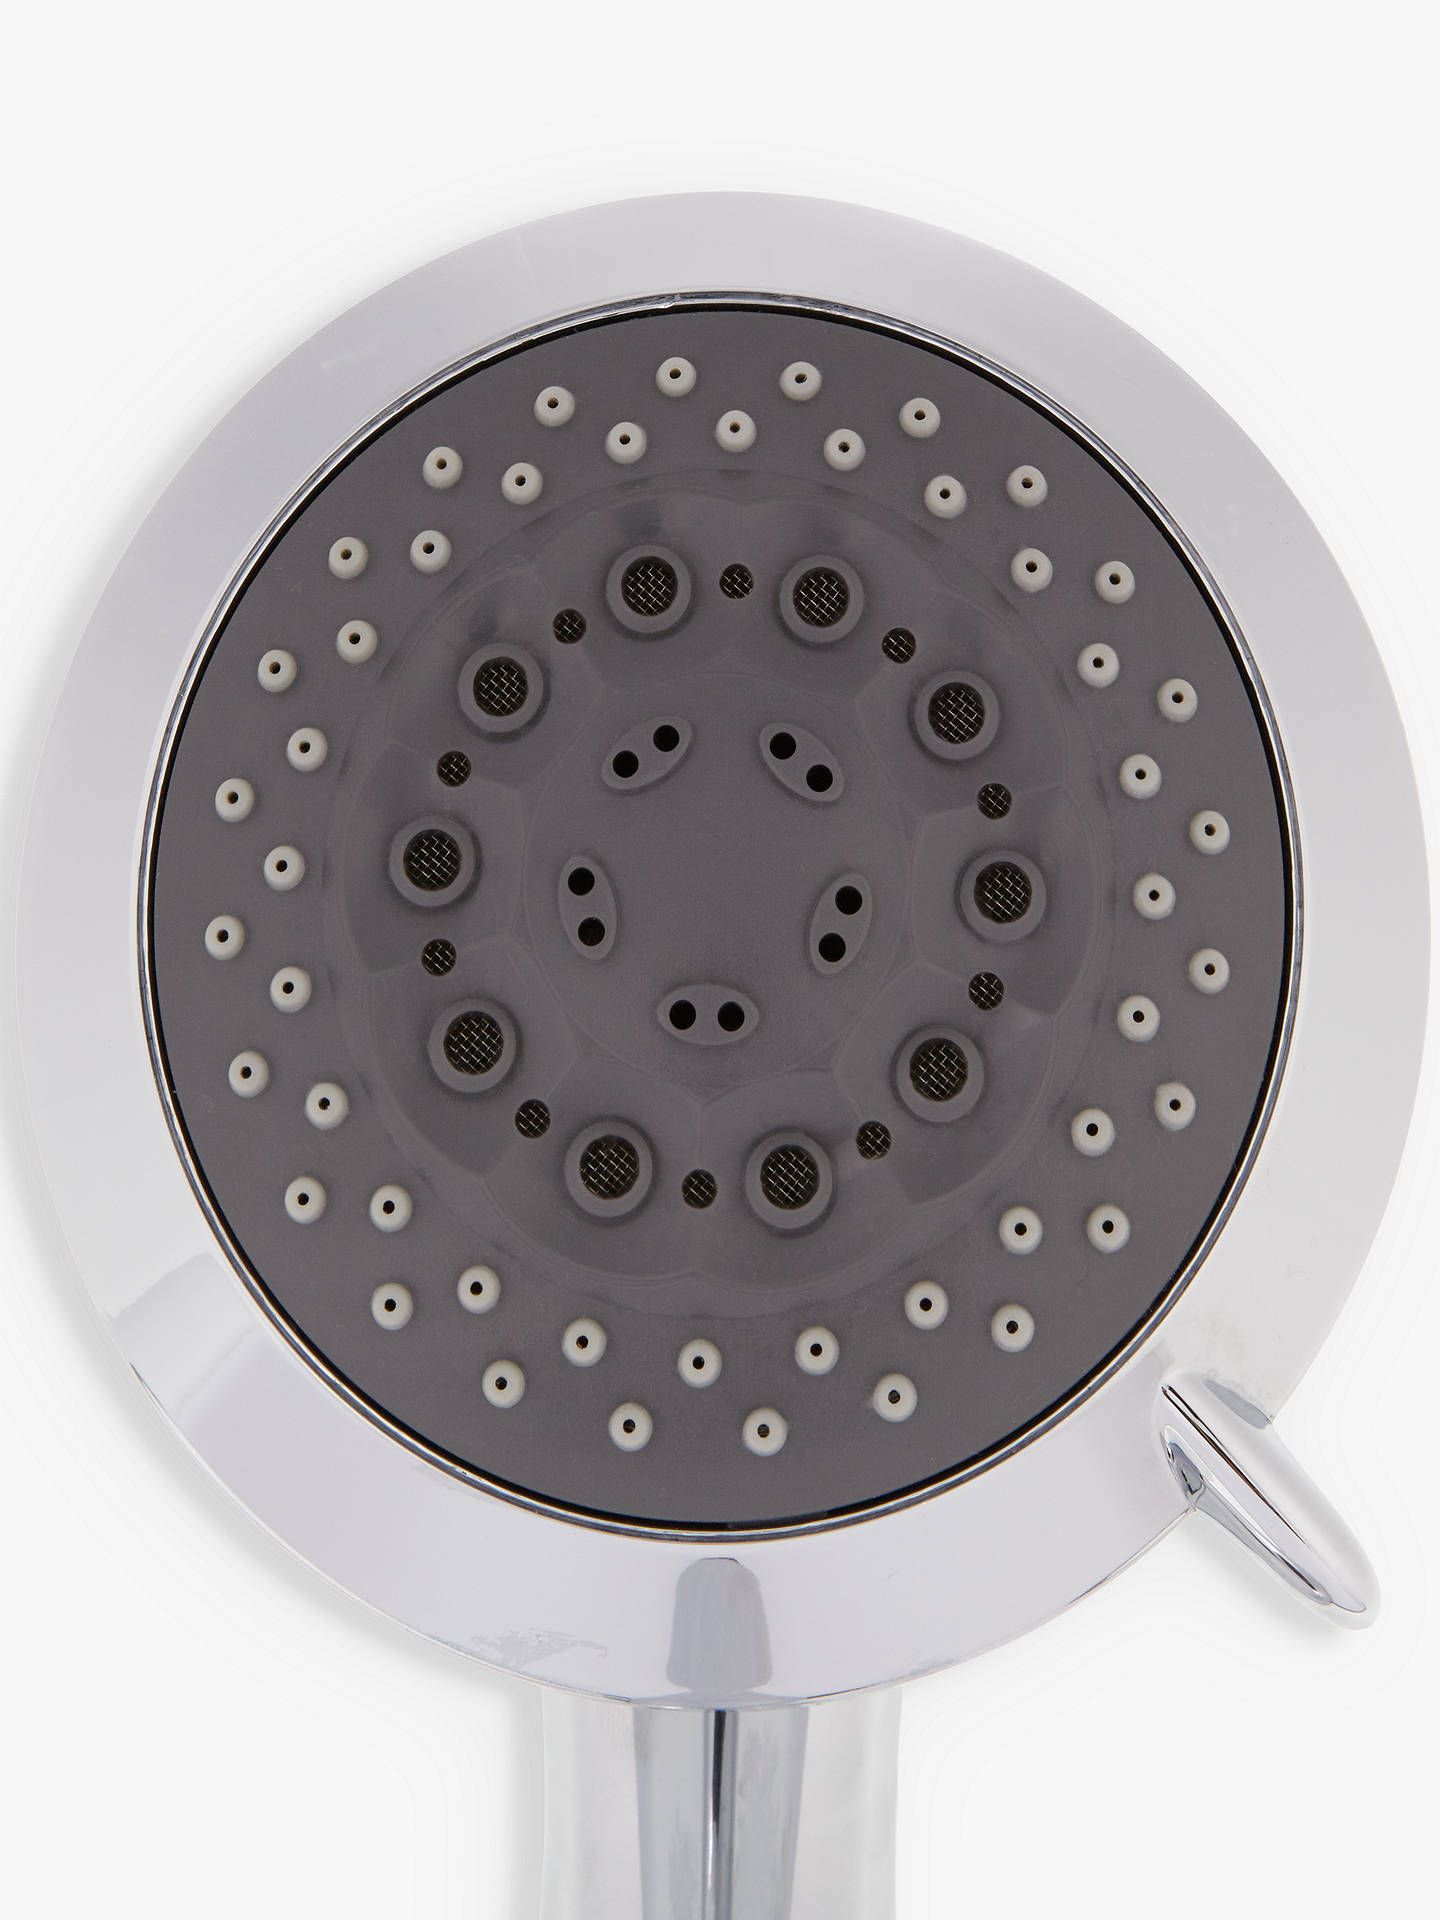 Buy John Lewis & Partners Easy Clean Shower Head, 4 Function with Massage Setting Online at johnlewis.com